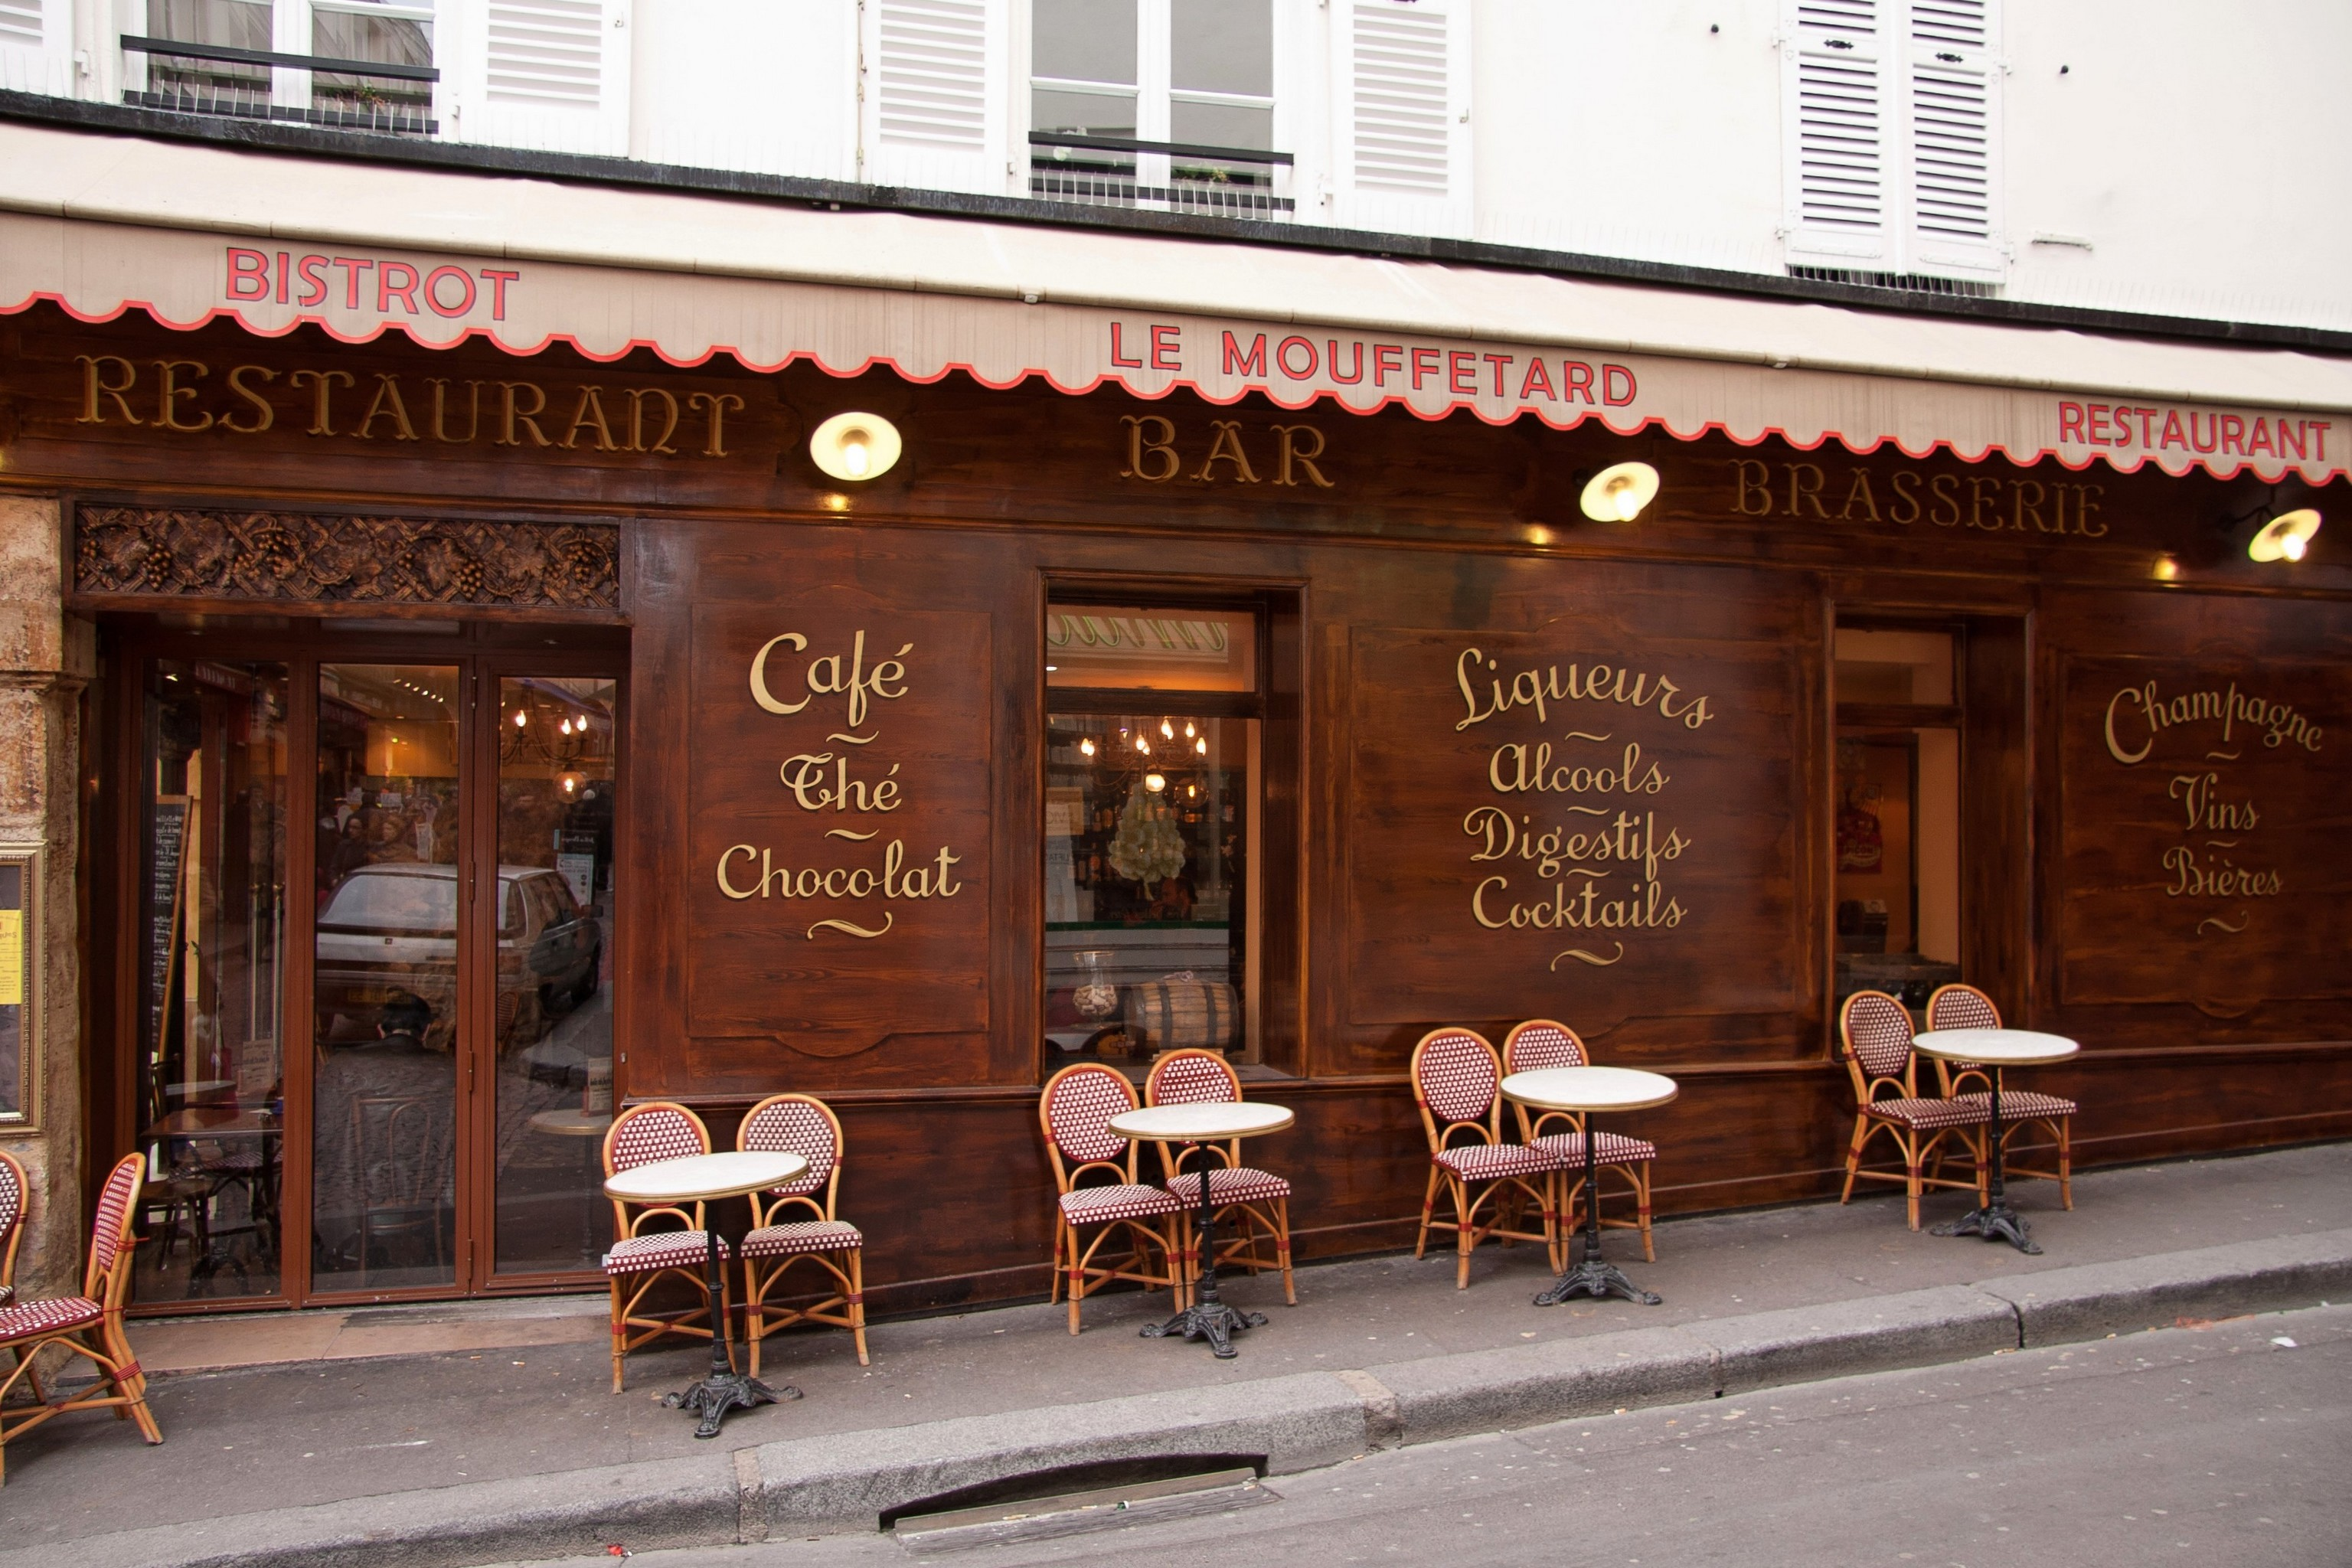 File:Le Mouffetard, Restaurant, 2011.jpg - Wikimedia Commons